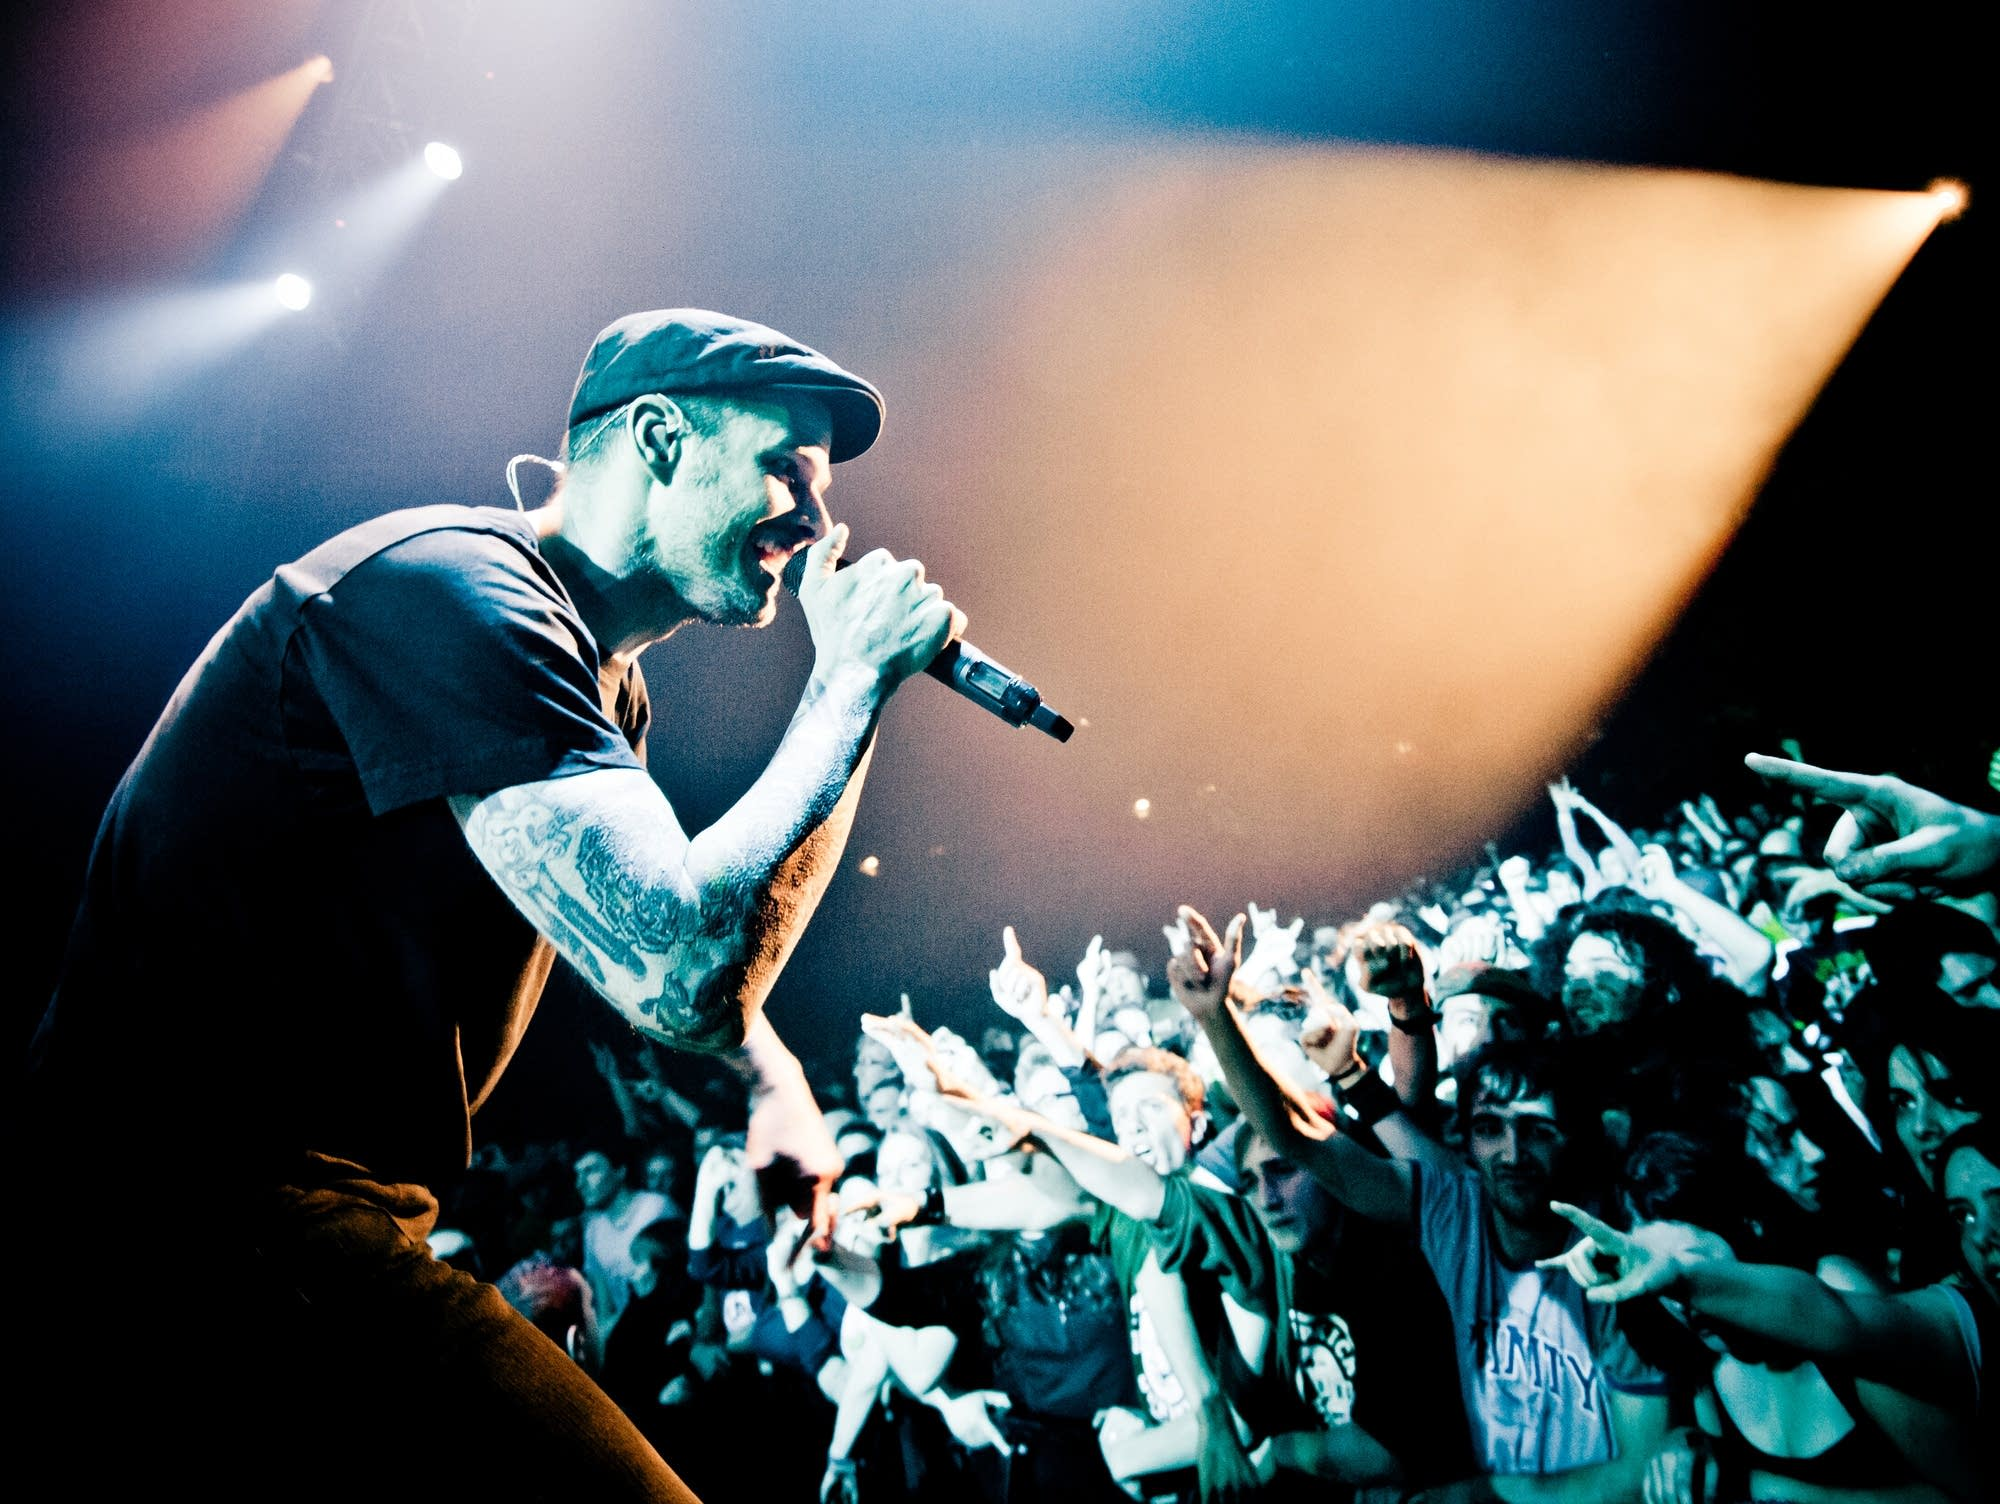 Dropkick Murphys perform in 2012.